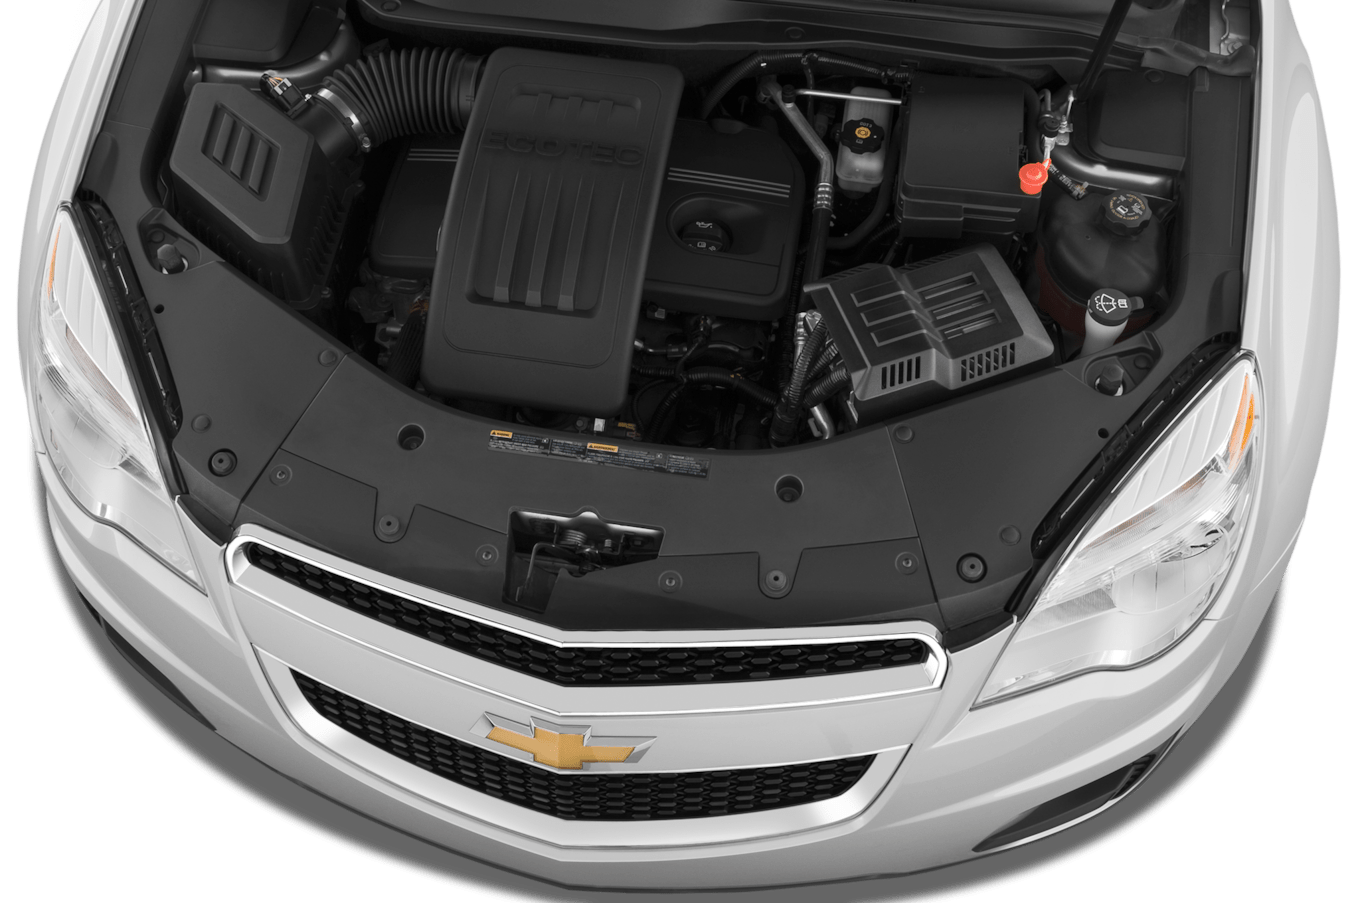 2005 chevy equinox engine diagram mk4 jetta stereo wiring chevrolet reviews and rating motor trend